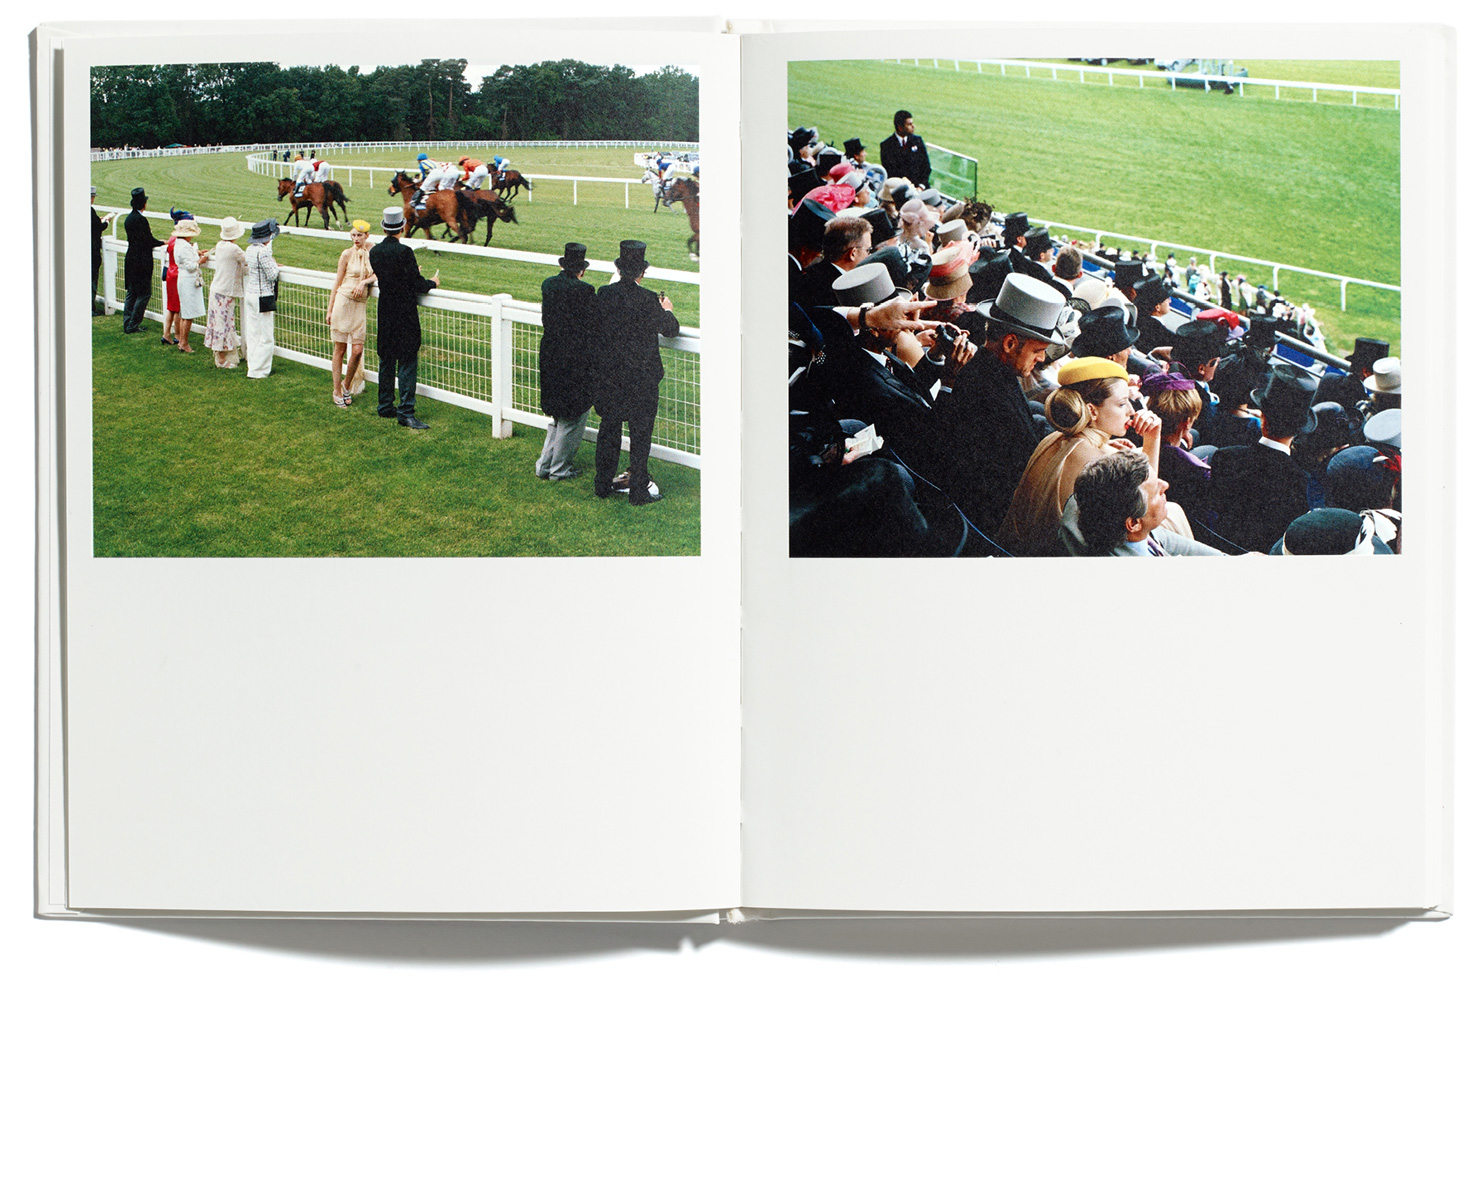 Browns Editions, Zanon-Larcher & Wright, Turning The Season, designed by Browns Design book